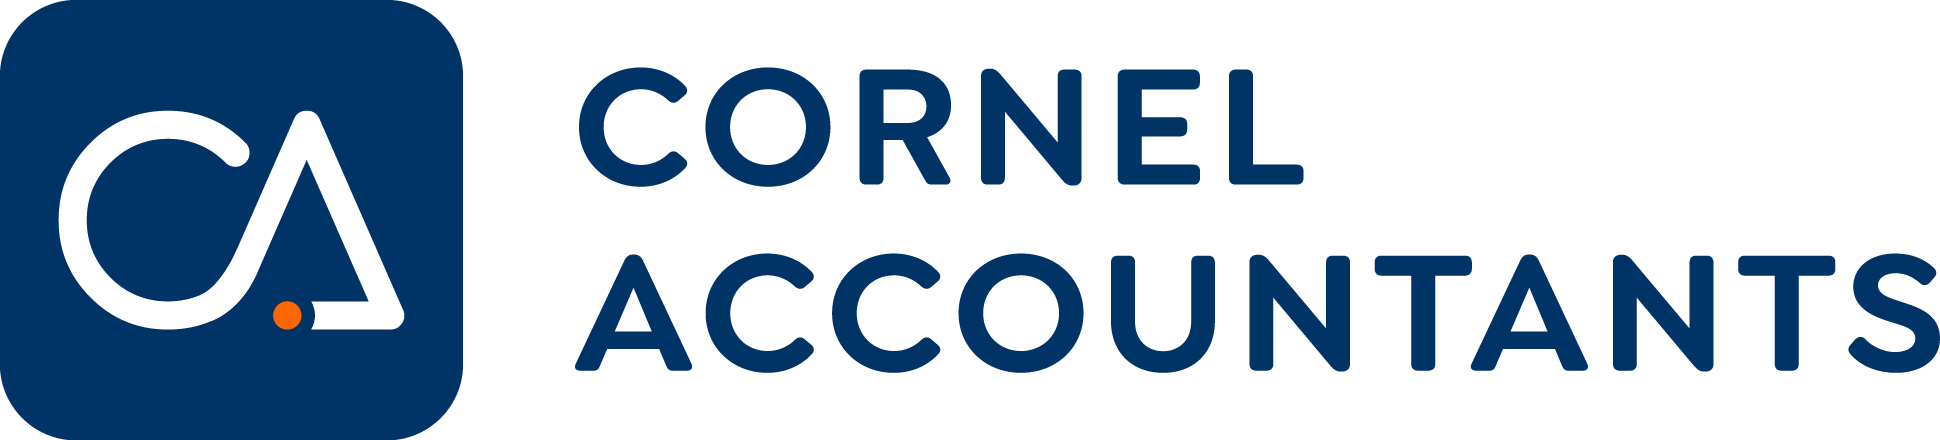 CORNEL Accountants